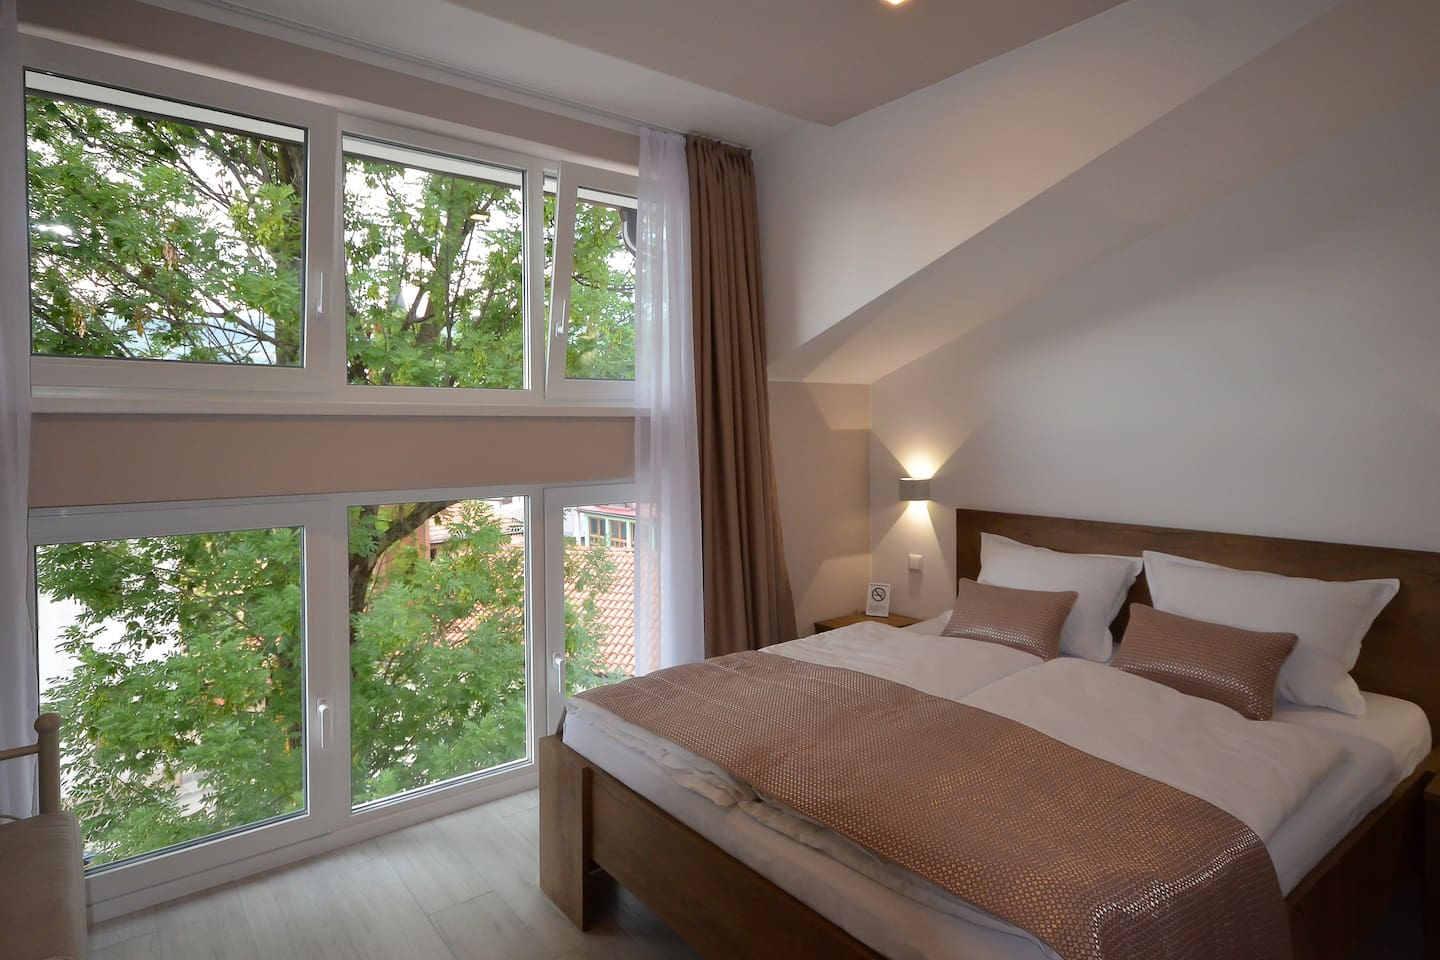 All new,beautiful view,comfortable beds......